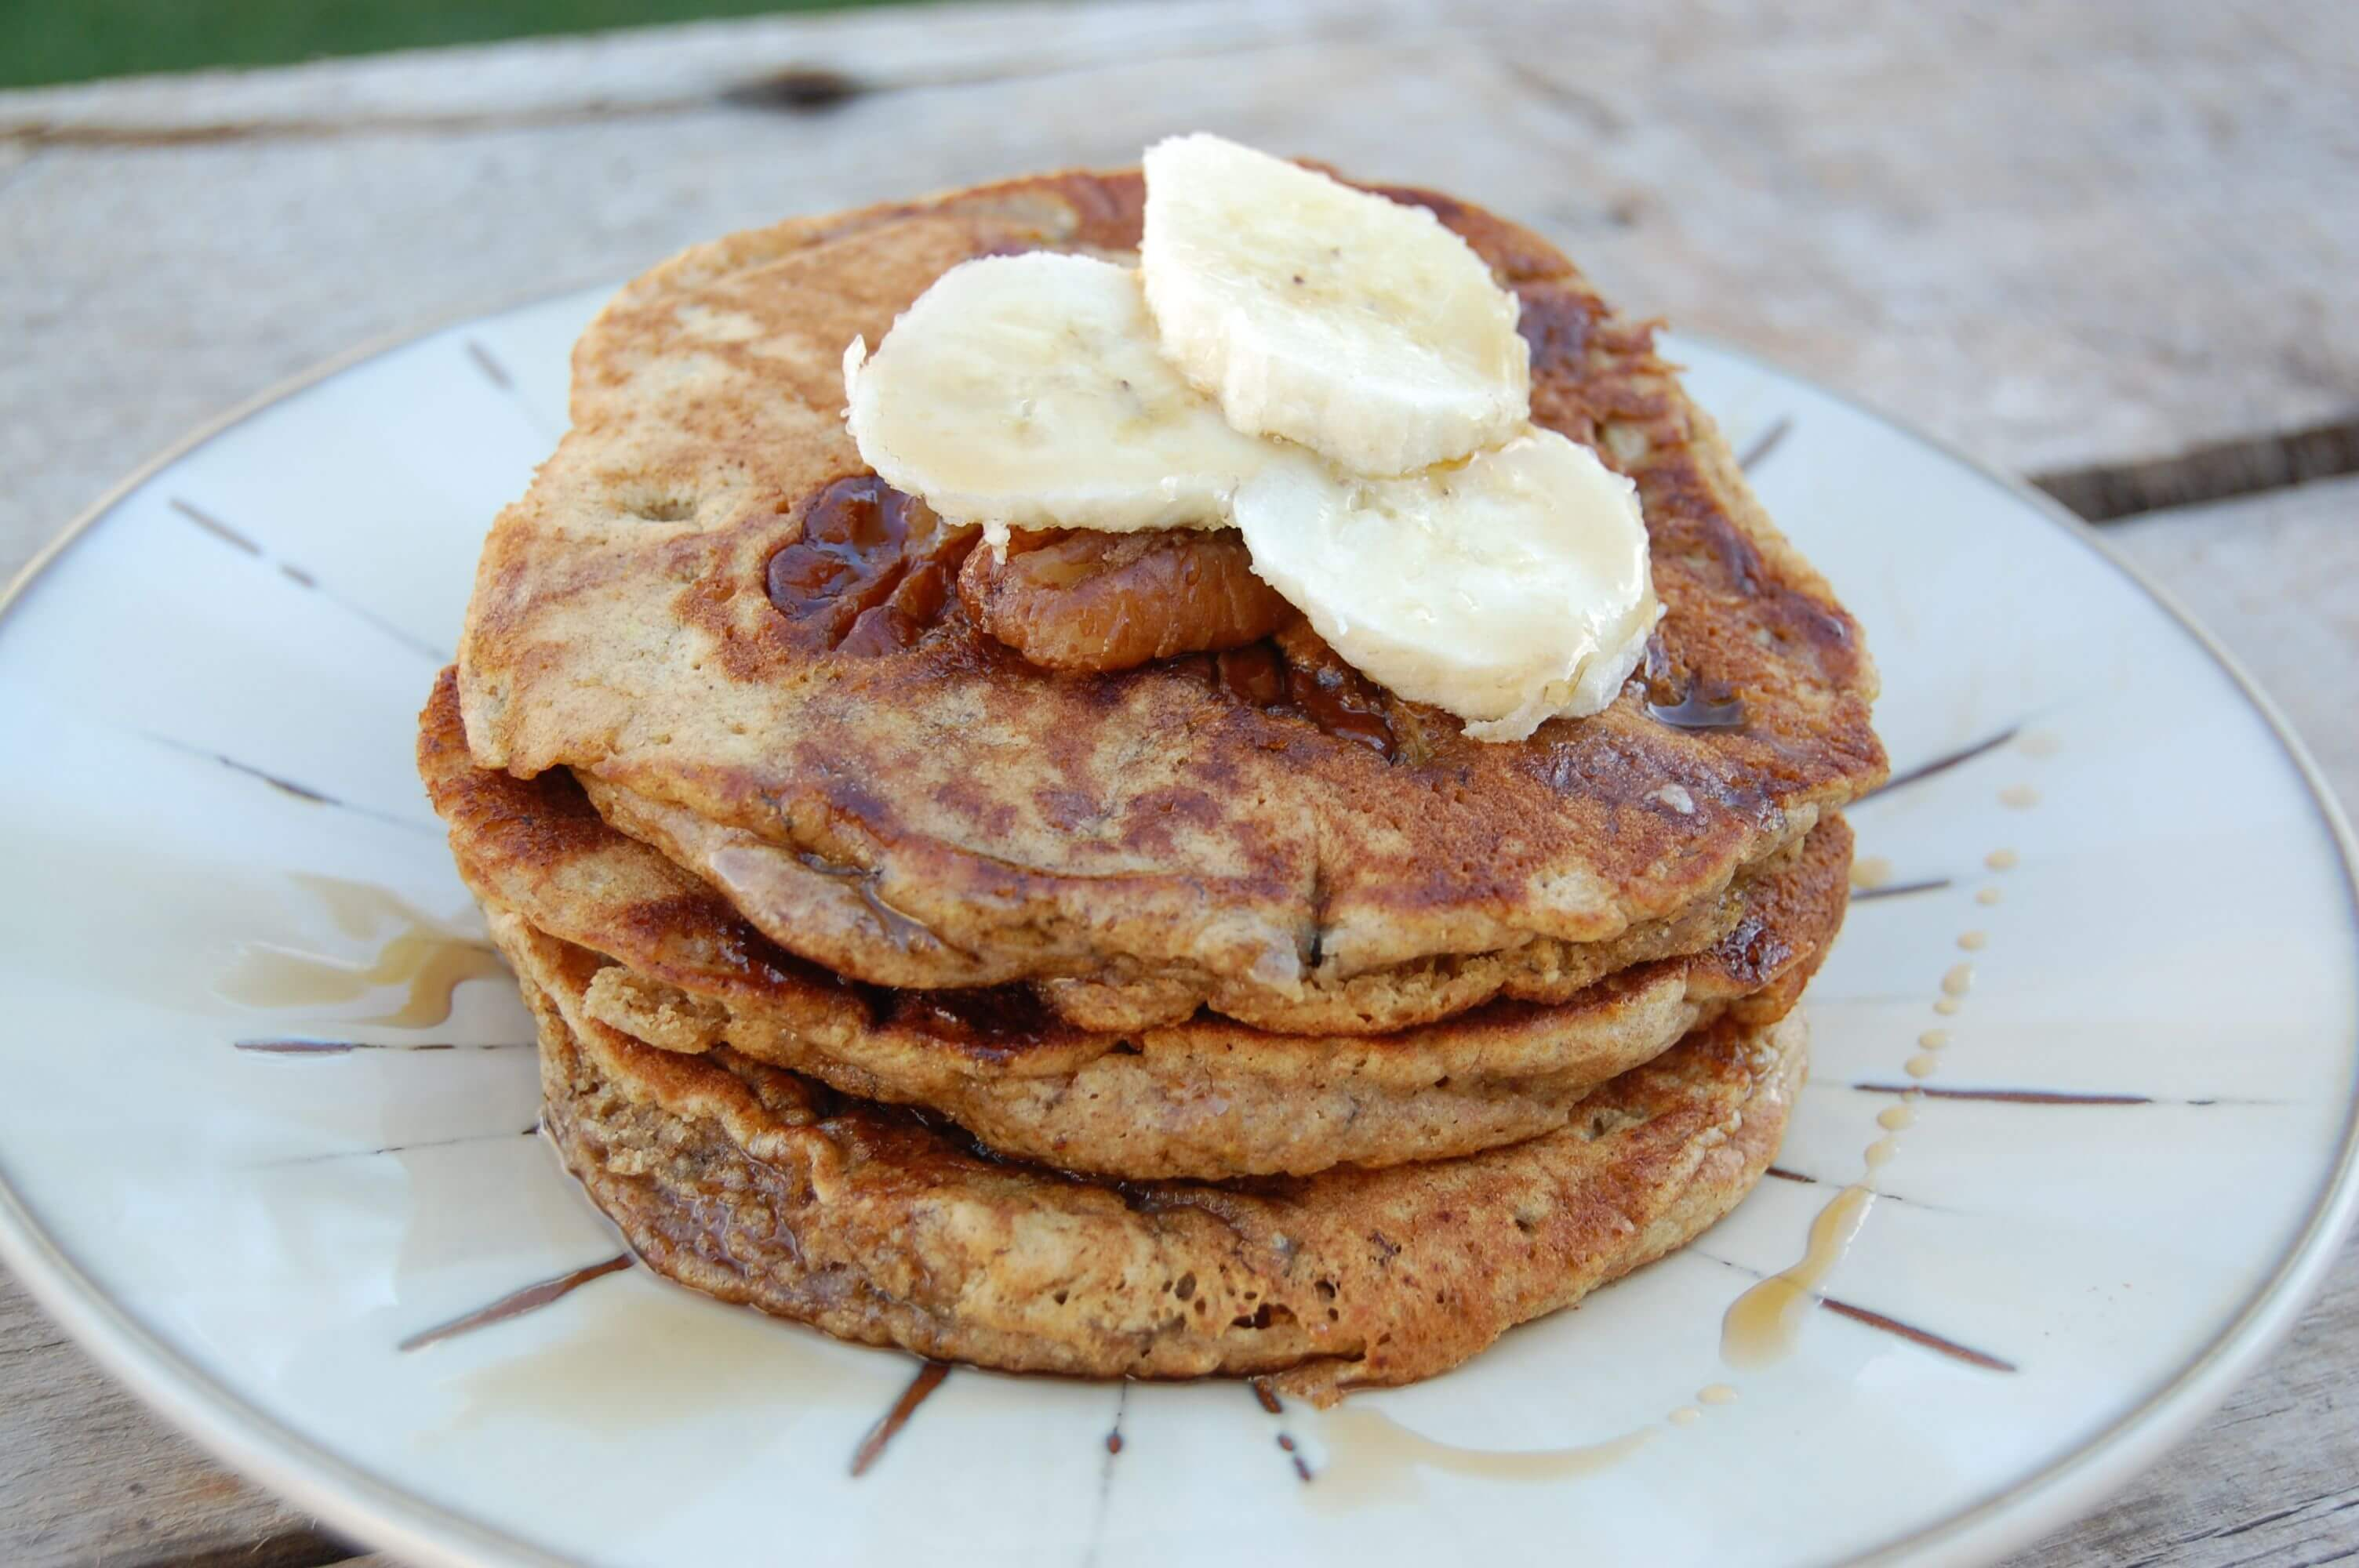 Banana pancakes without eggs and baking powder